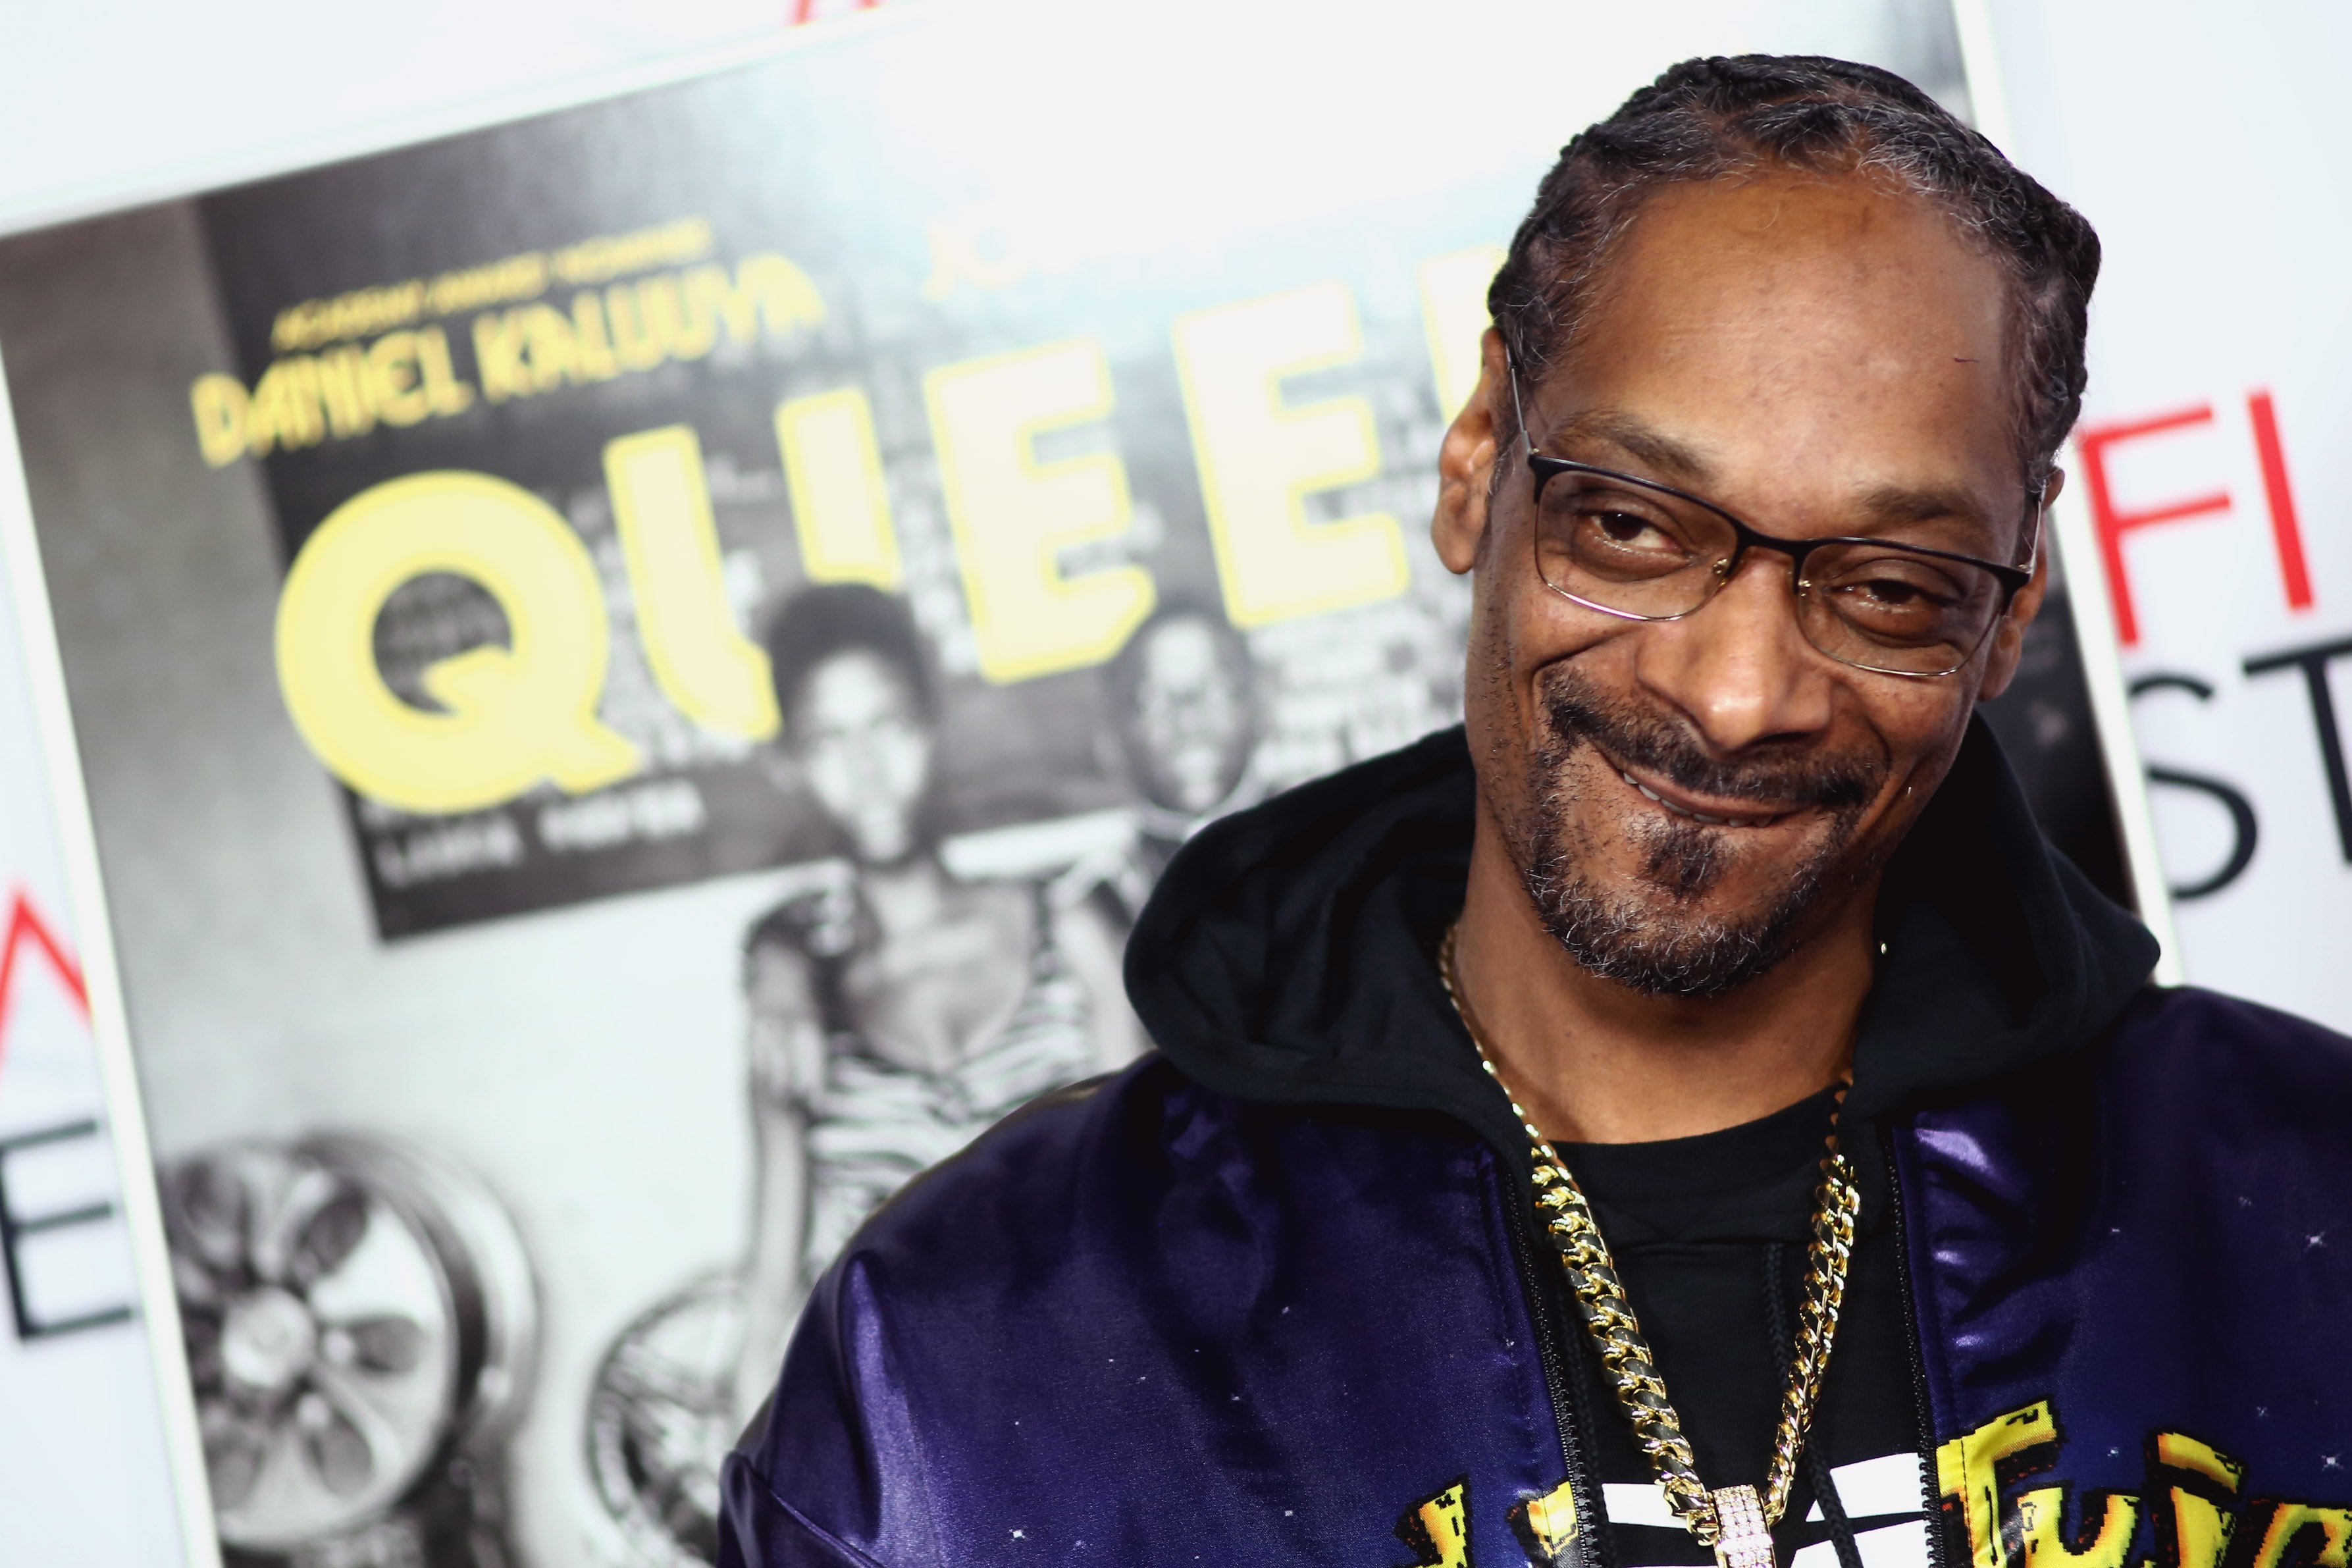 Image Credits: Getty images | Snoop Dog won three Billboard Music Awards in the year of 1994